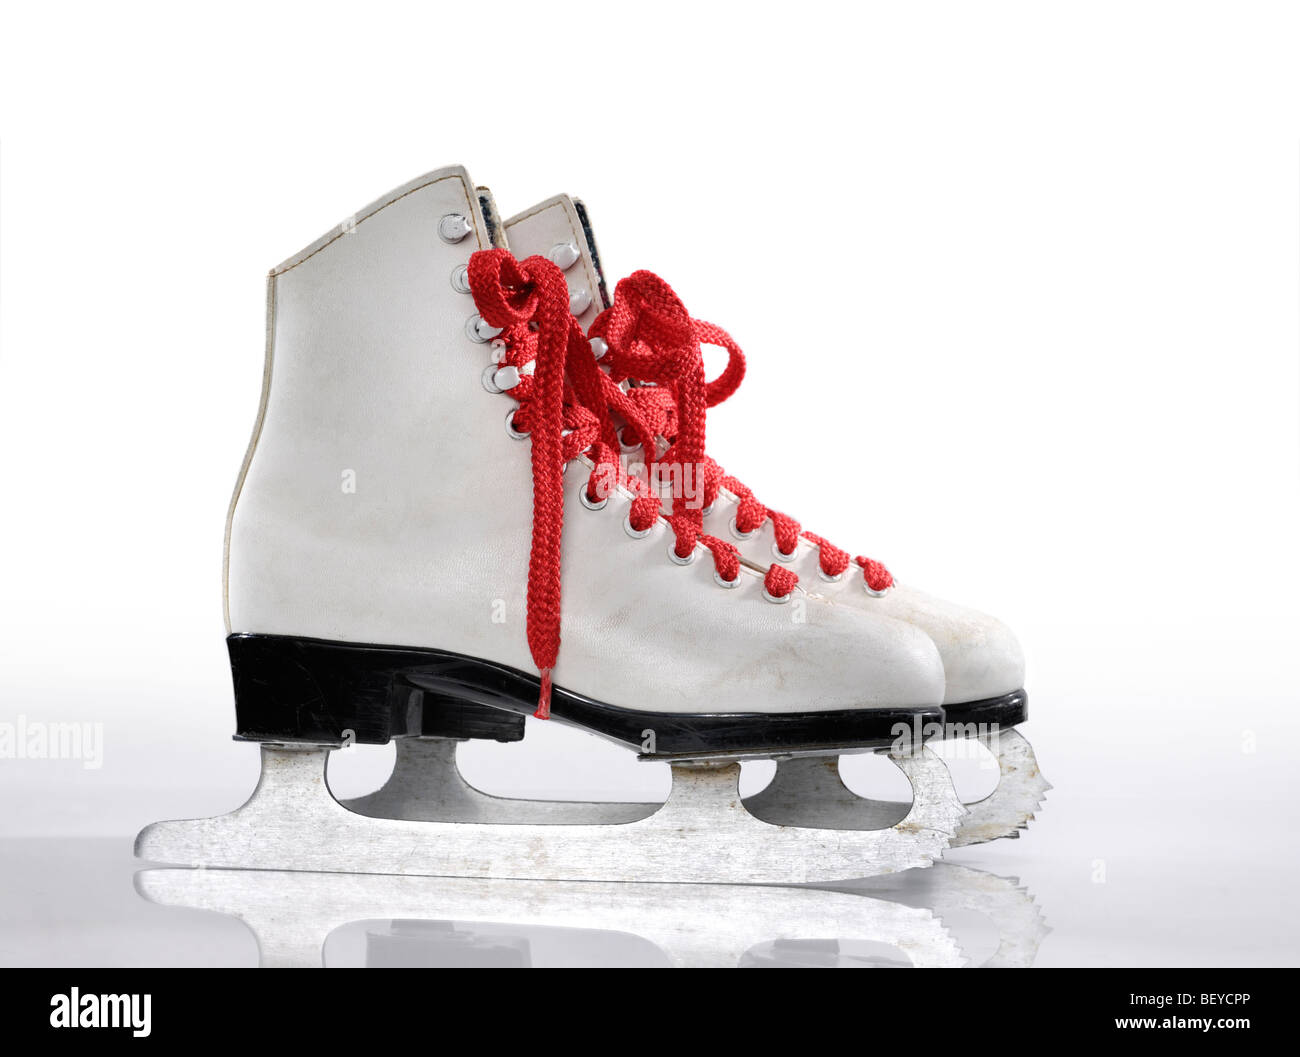 Ice skates with red laces - Stock Image